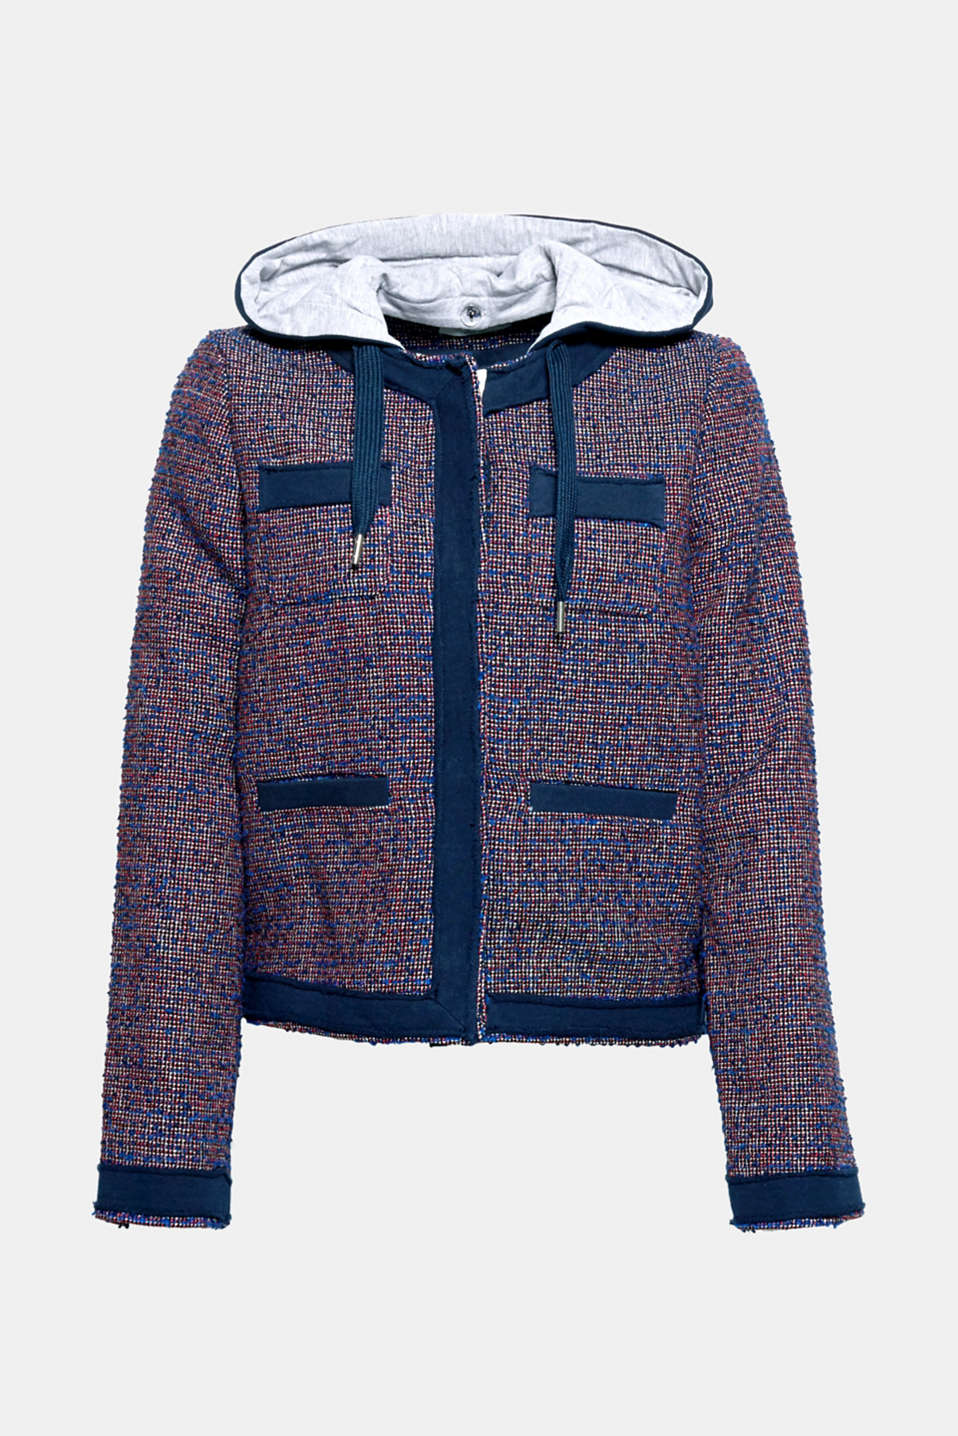 Fine jacquard meets soft sweatshirt fabric: a hood gives this short jacket with a jacquard pattern a casual touch.